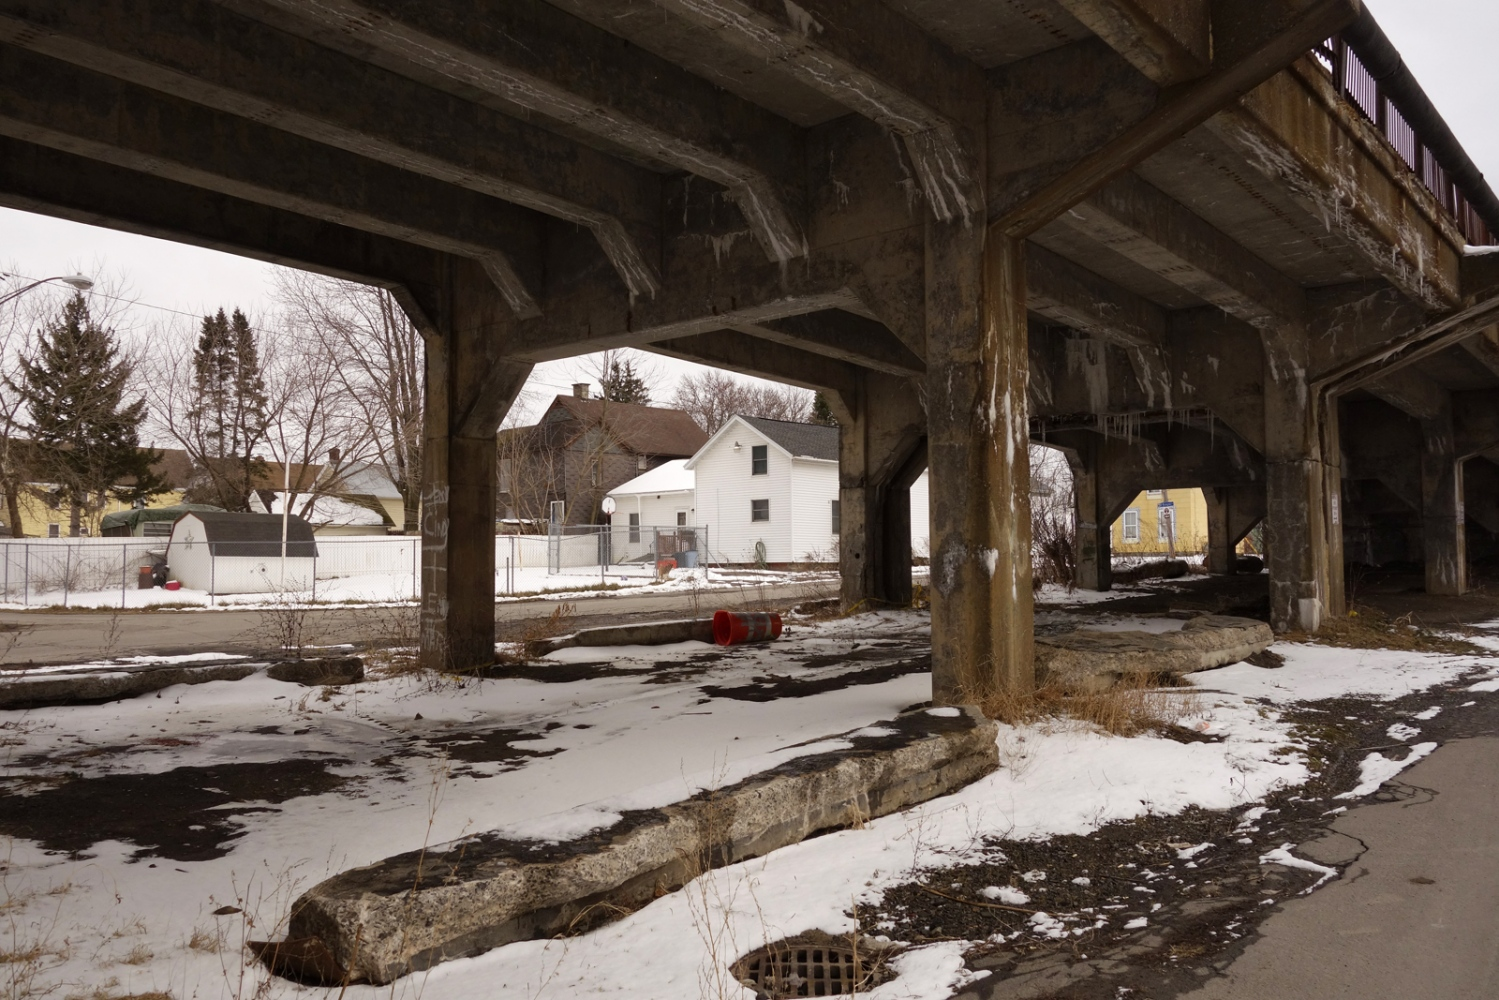 Hope Street, West Utica, NY, under a bridge and along the railroad tracks